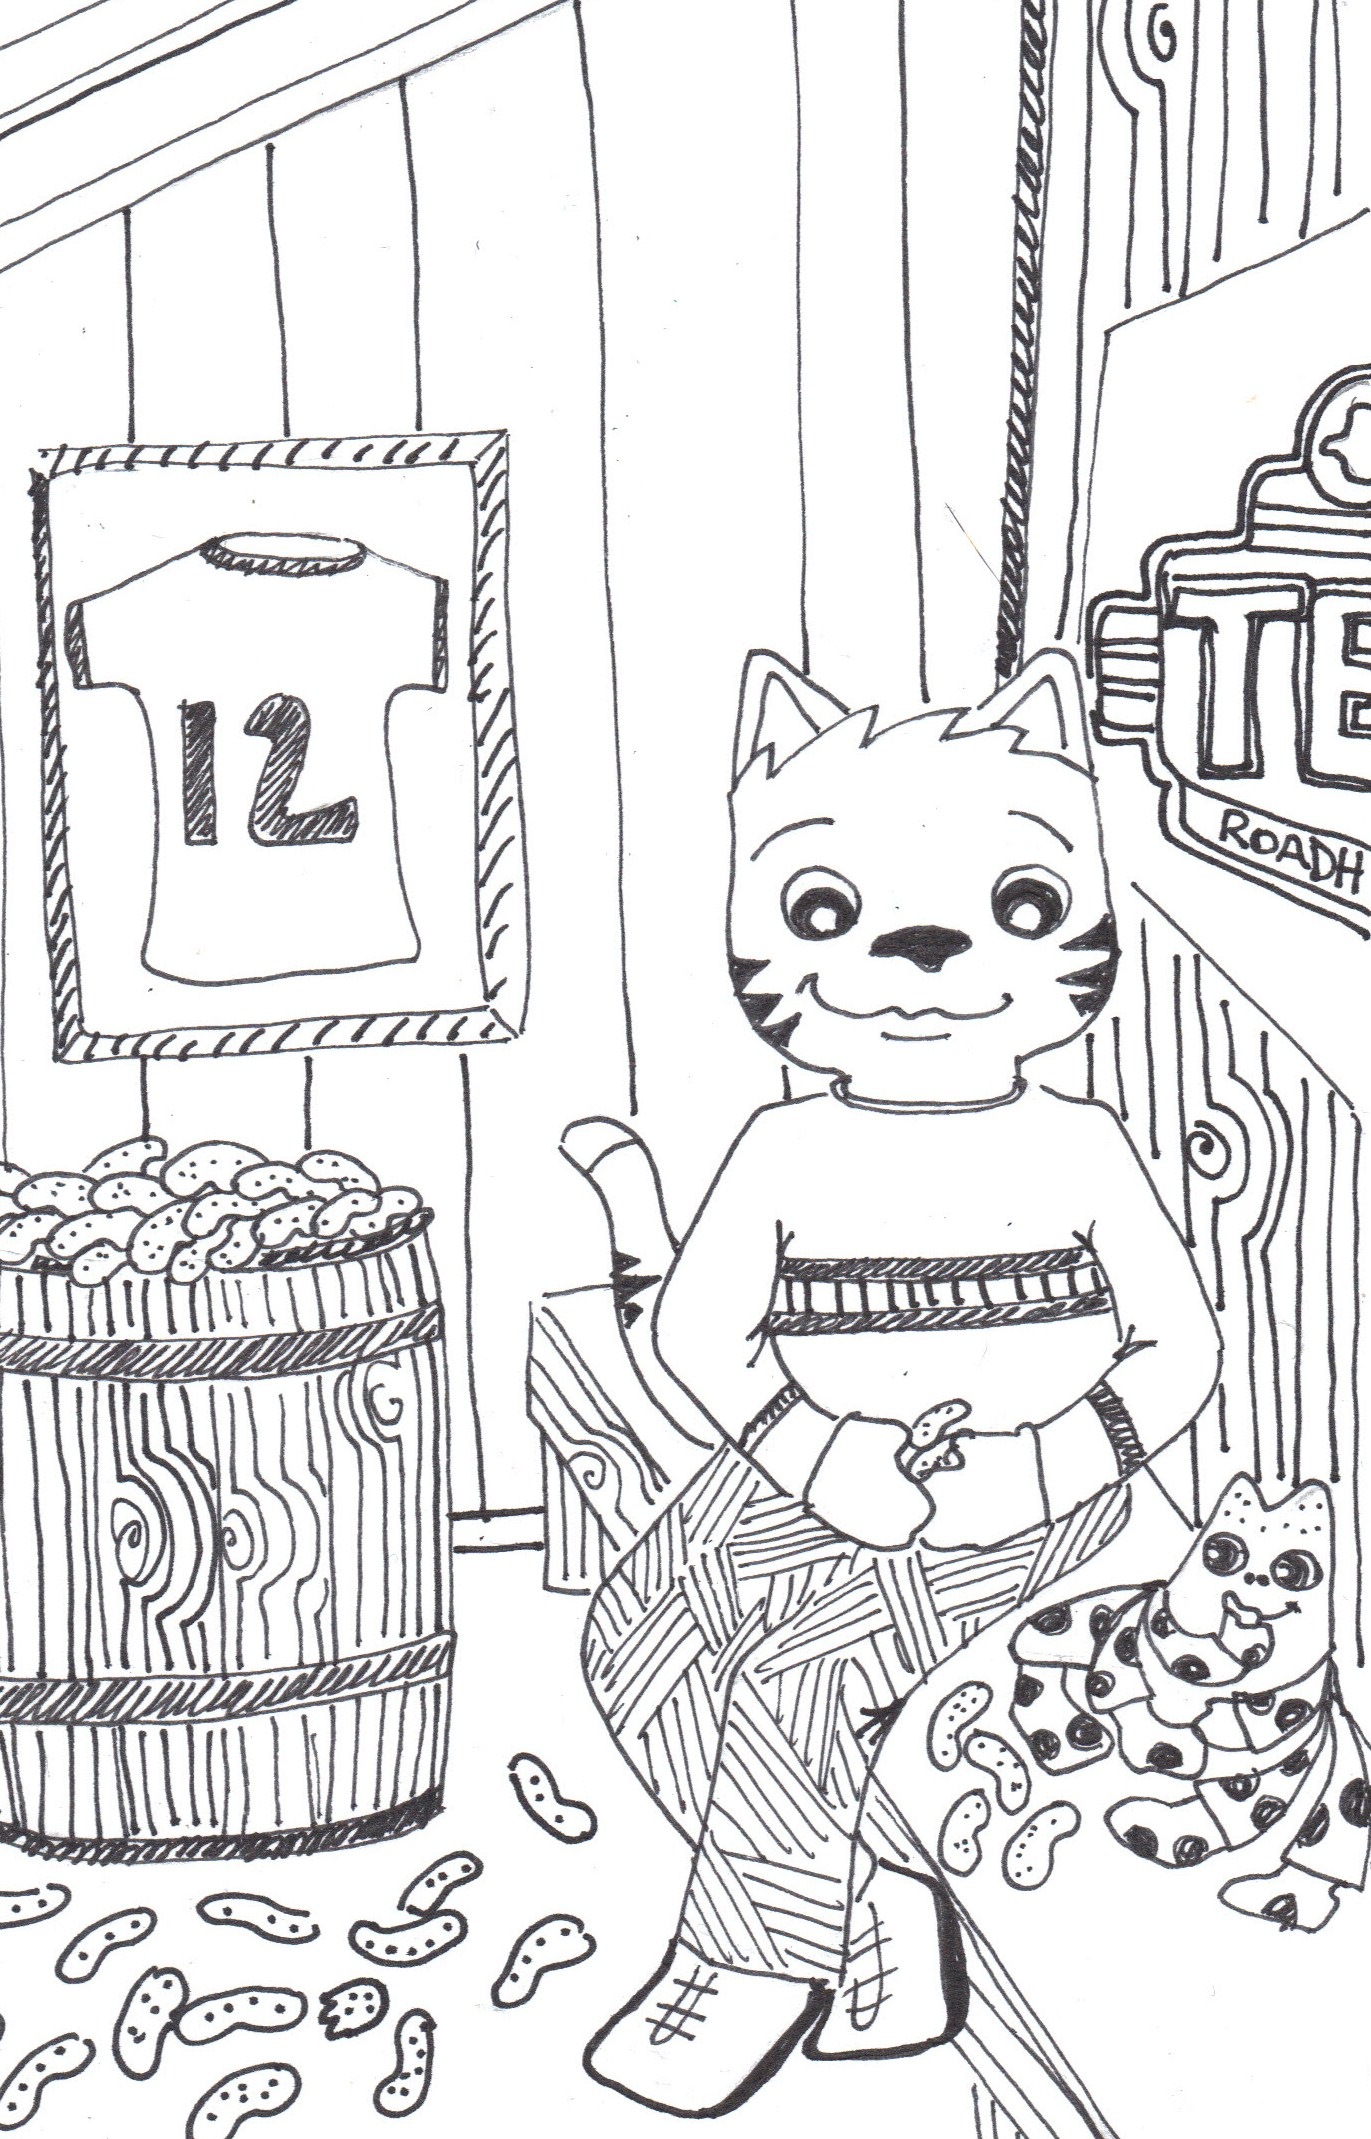 Texas roadhouse coloring pages coloring page january 2017 the crafty sisters page 2 buycottarizona